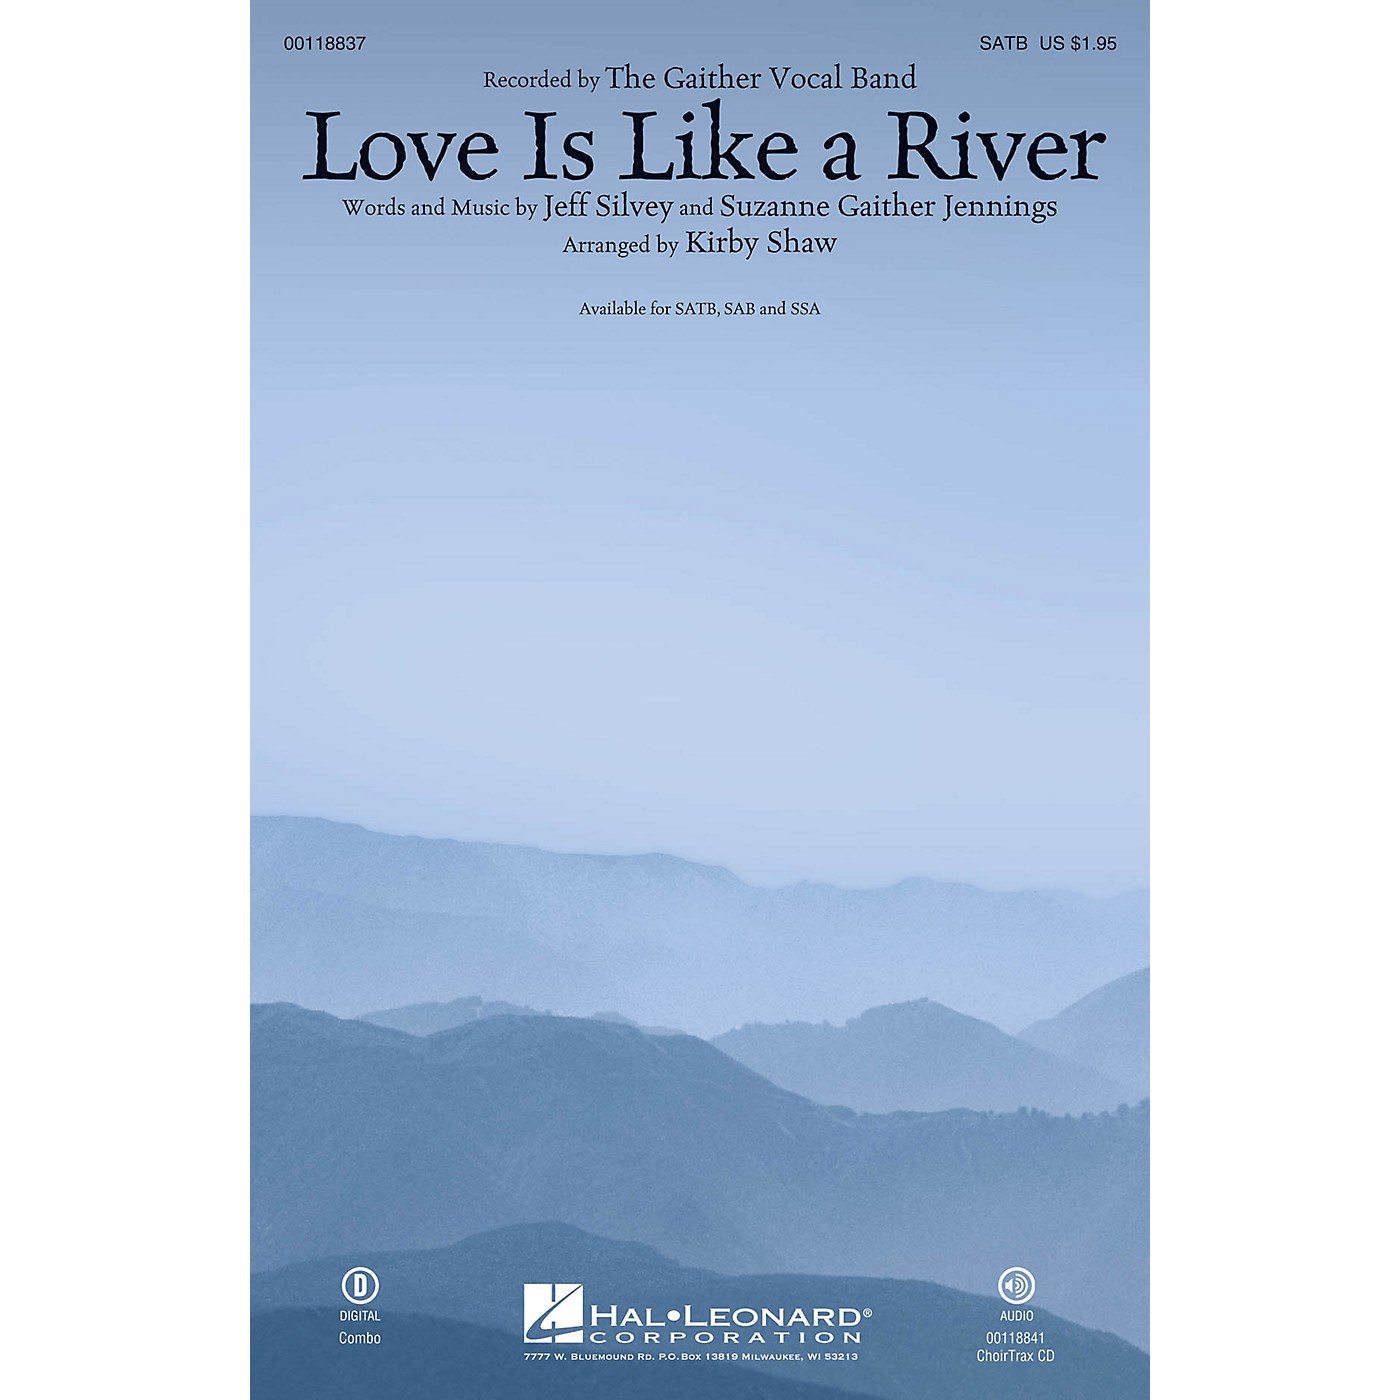 Hal Leonard Love Is Like a River SATB by Gaither Vocal Band arranged by Kirby Shaw thumbnail